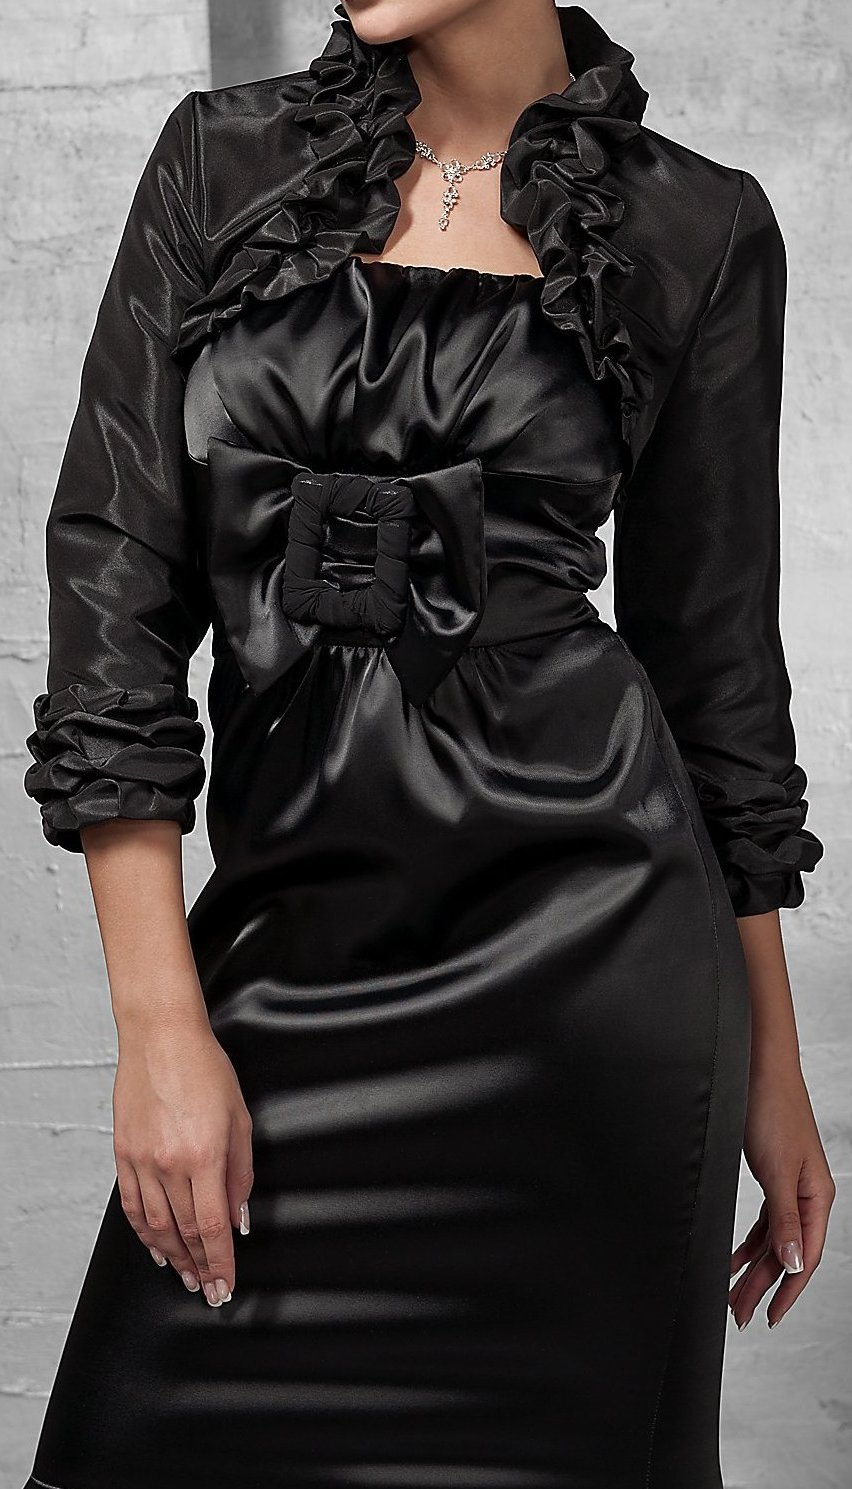 robes gallery  bolero soiree noir 17e85.jpg